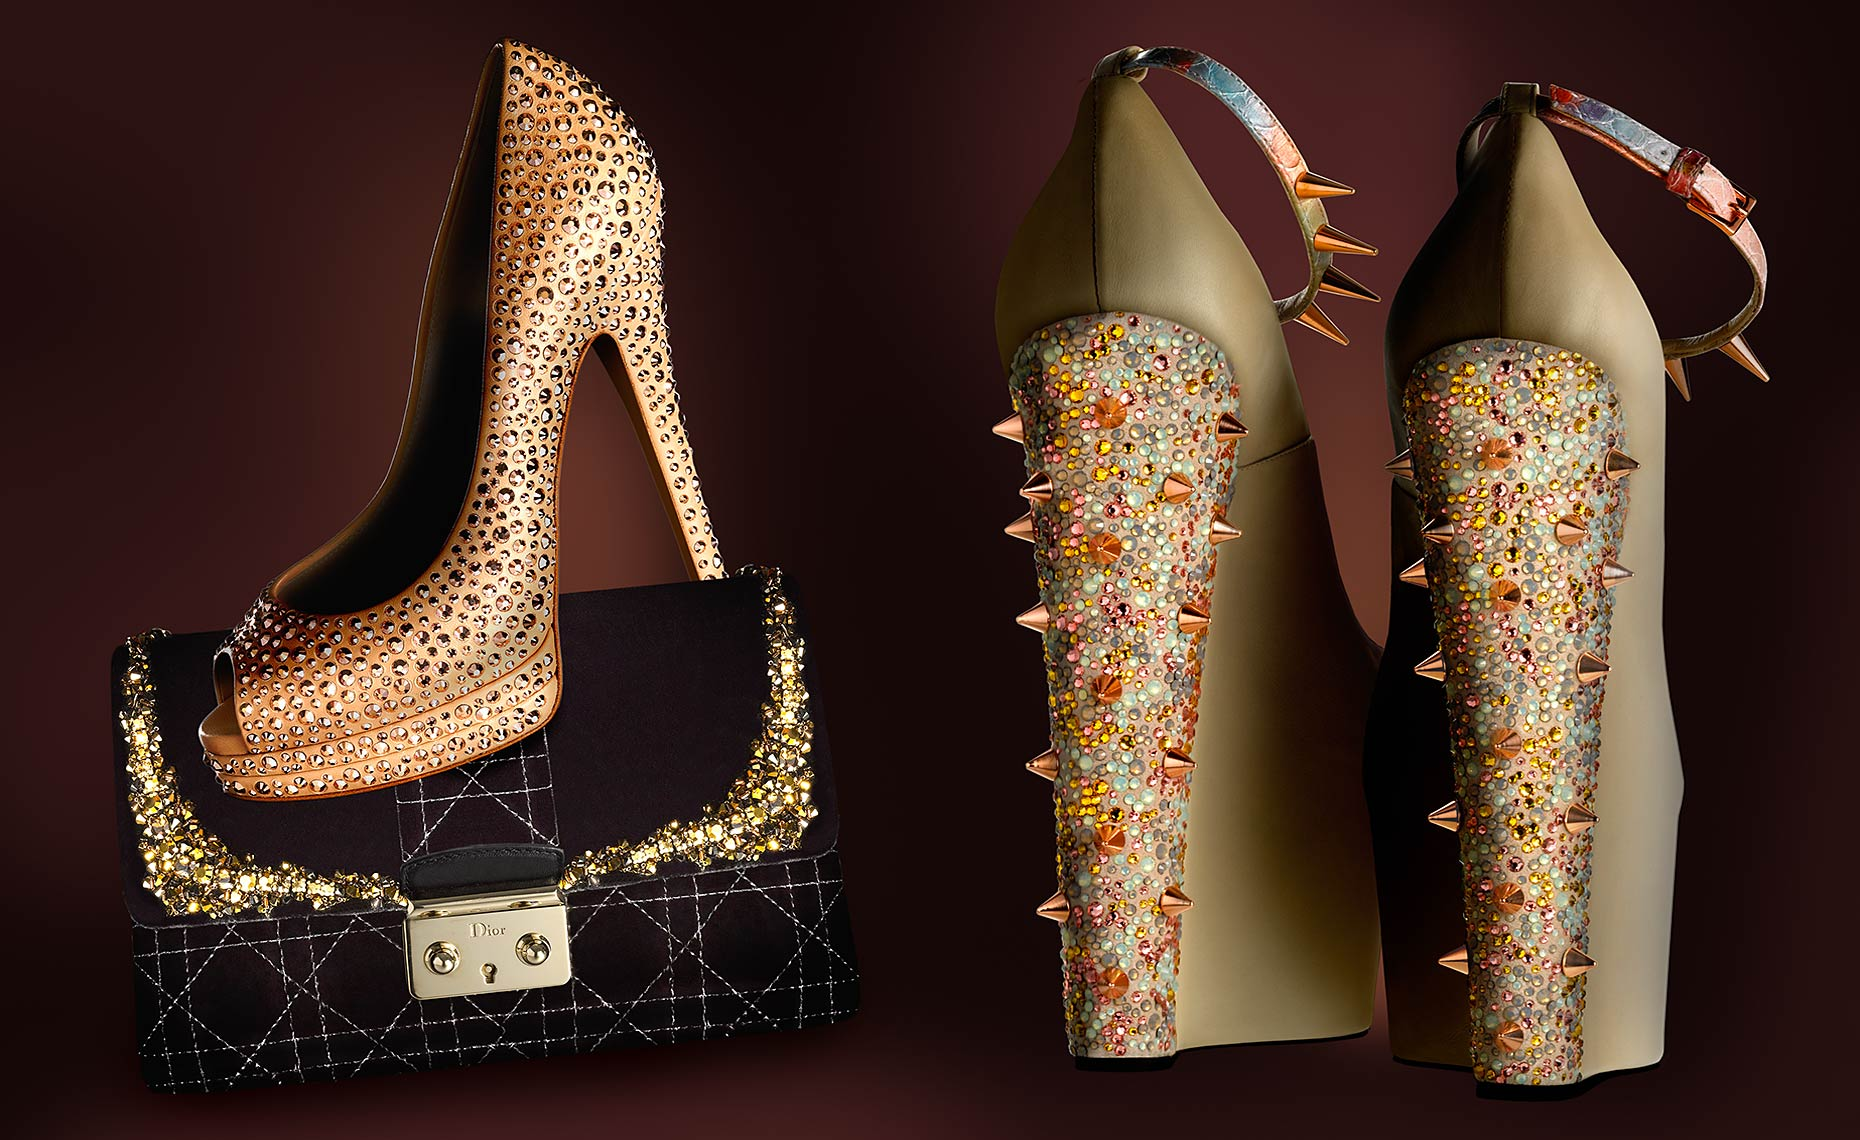 Casadei shoe with Dior handbag and Ruthie Davis platform shoe with Swarovski crystal embellished  heel